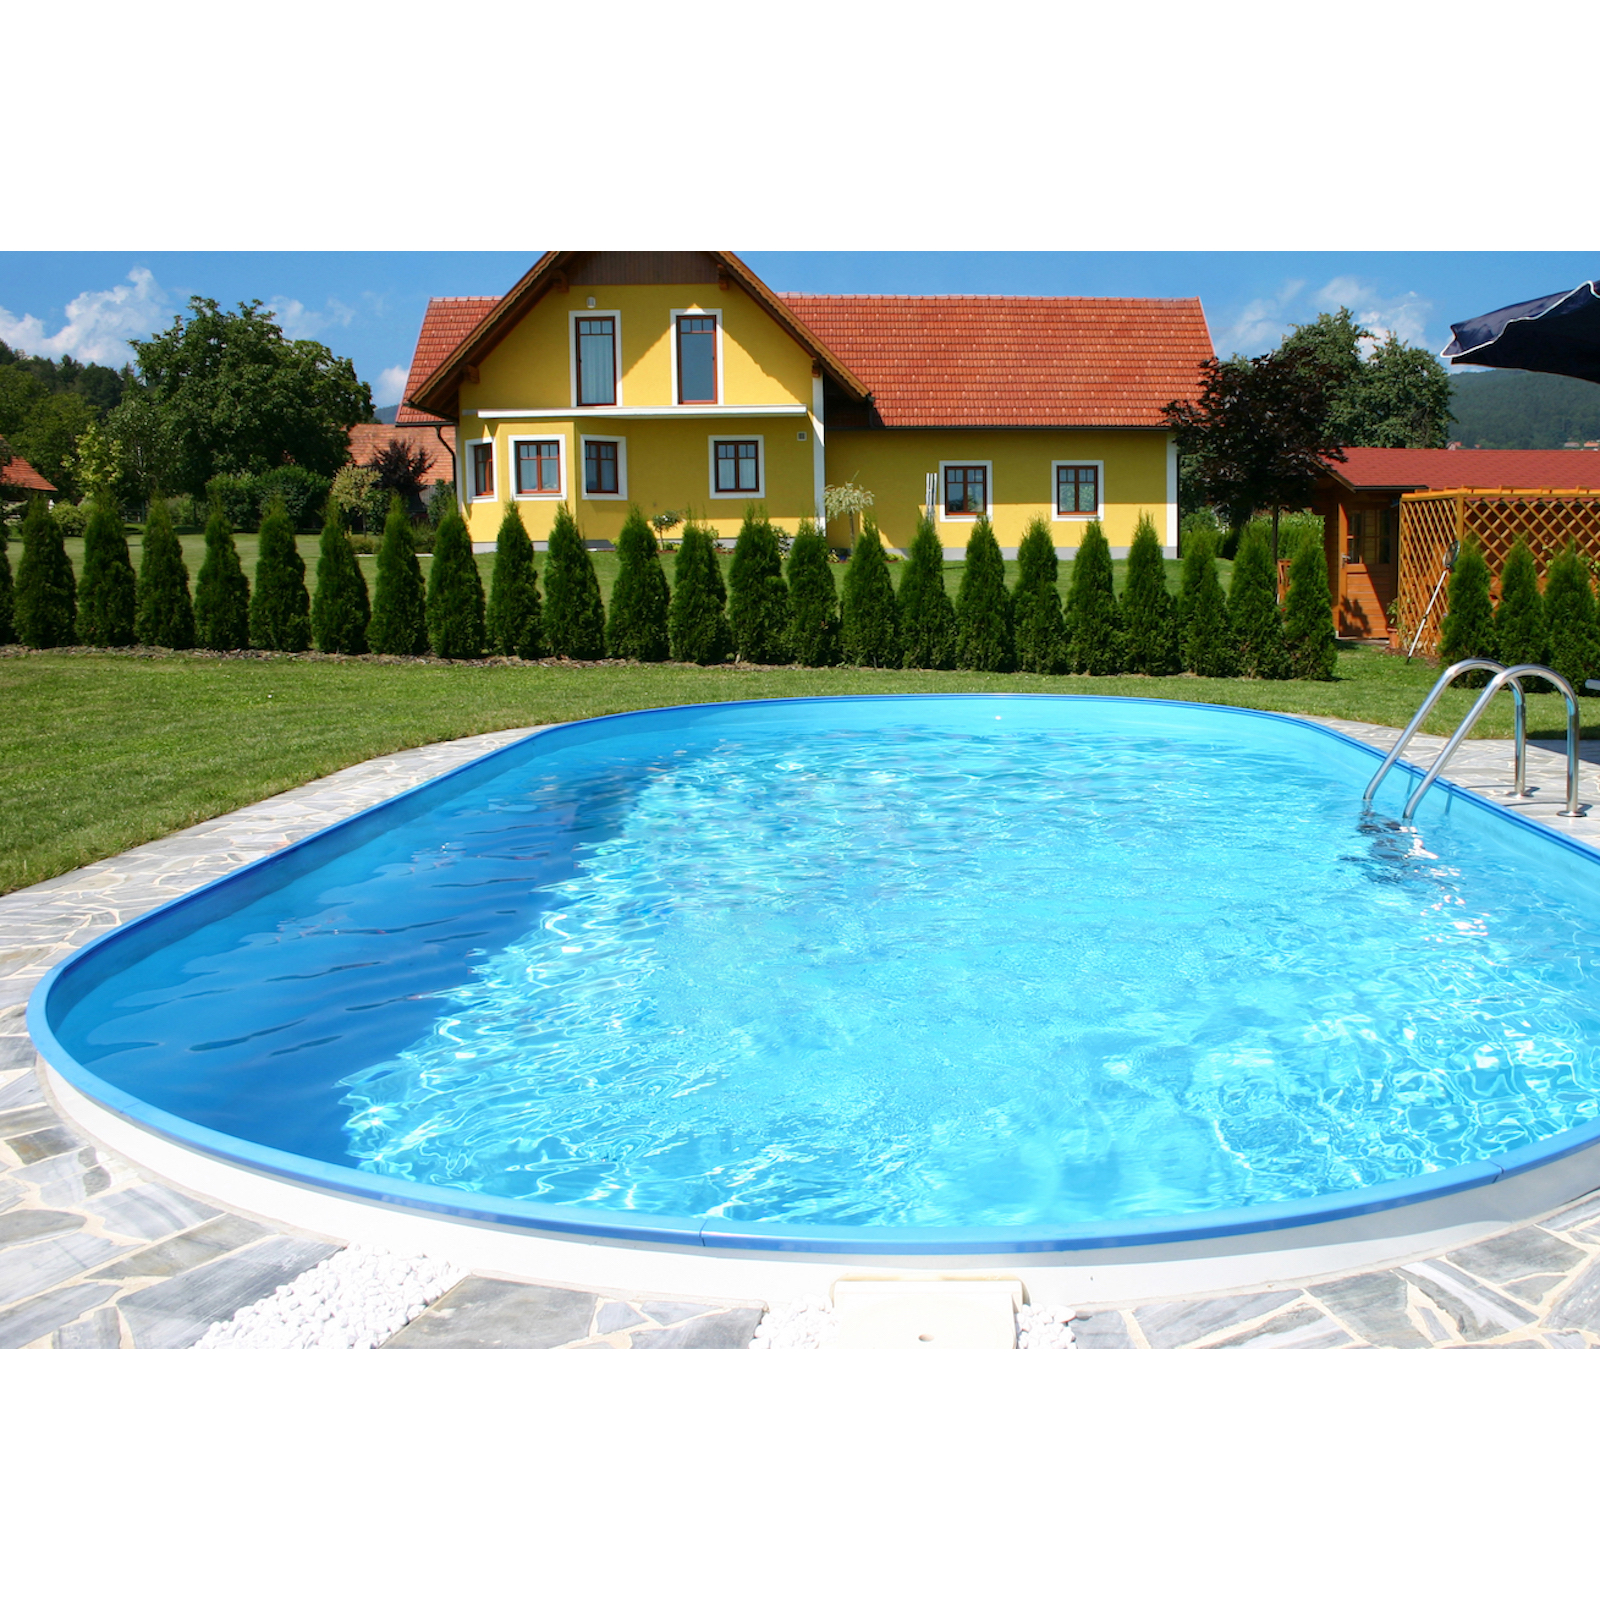 pool schwimmbecken oval stahlwand 4 gr en h he 150 cm swimmingpool ebay. Black Bedroom Furniture Sets. Home Design Ideas